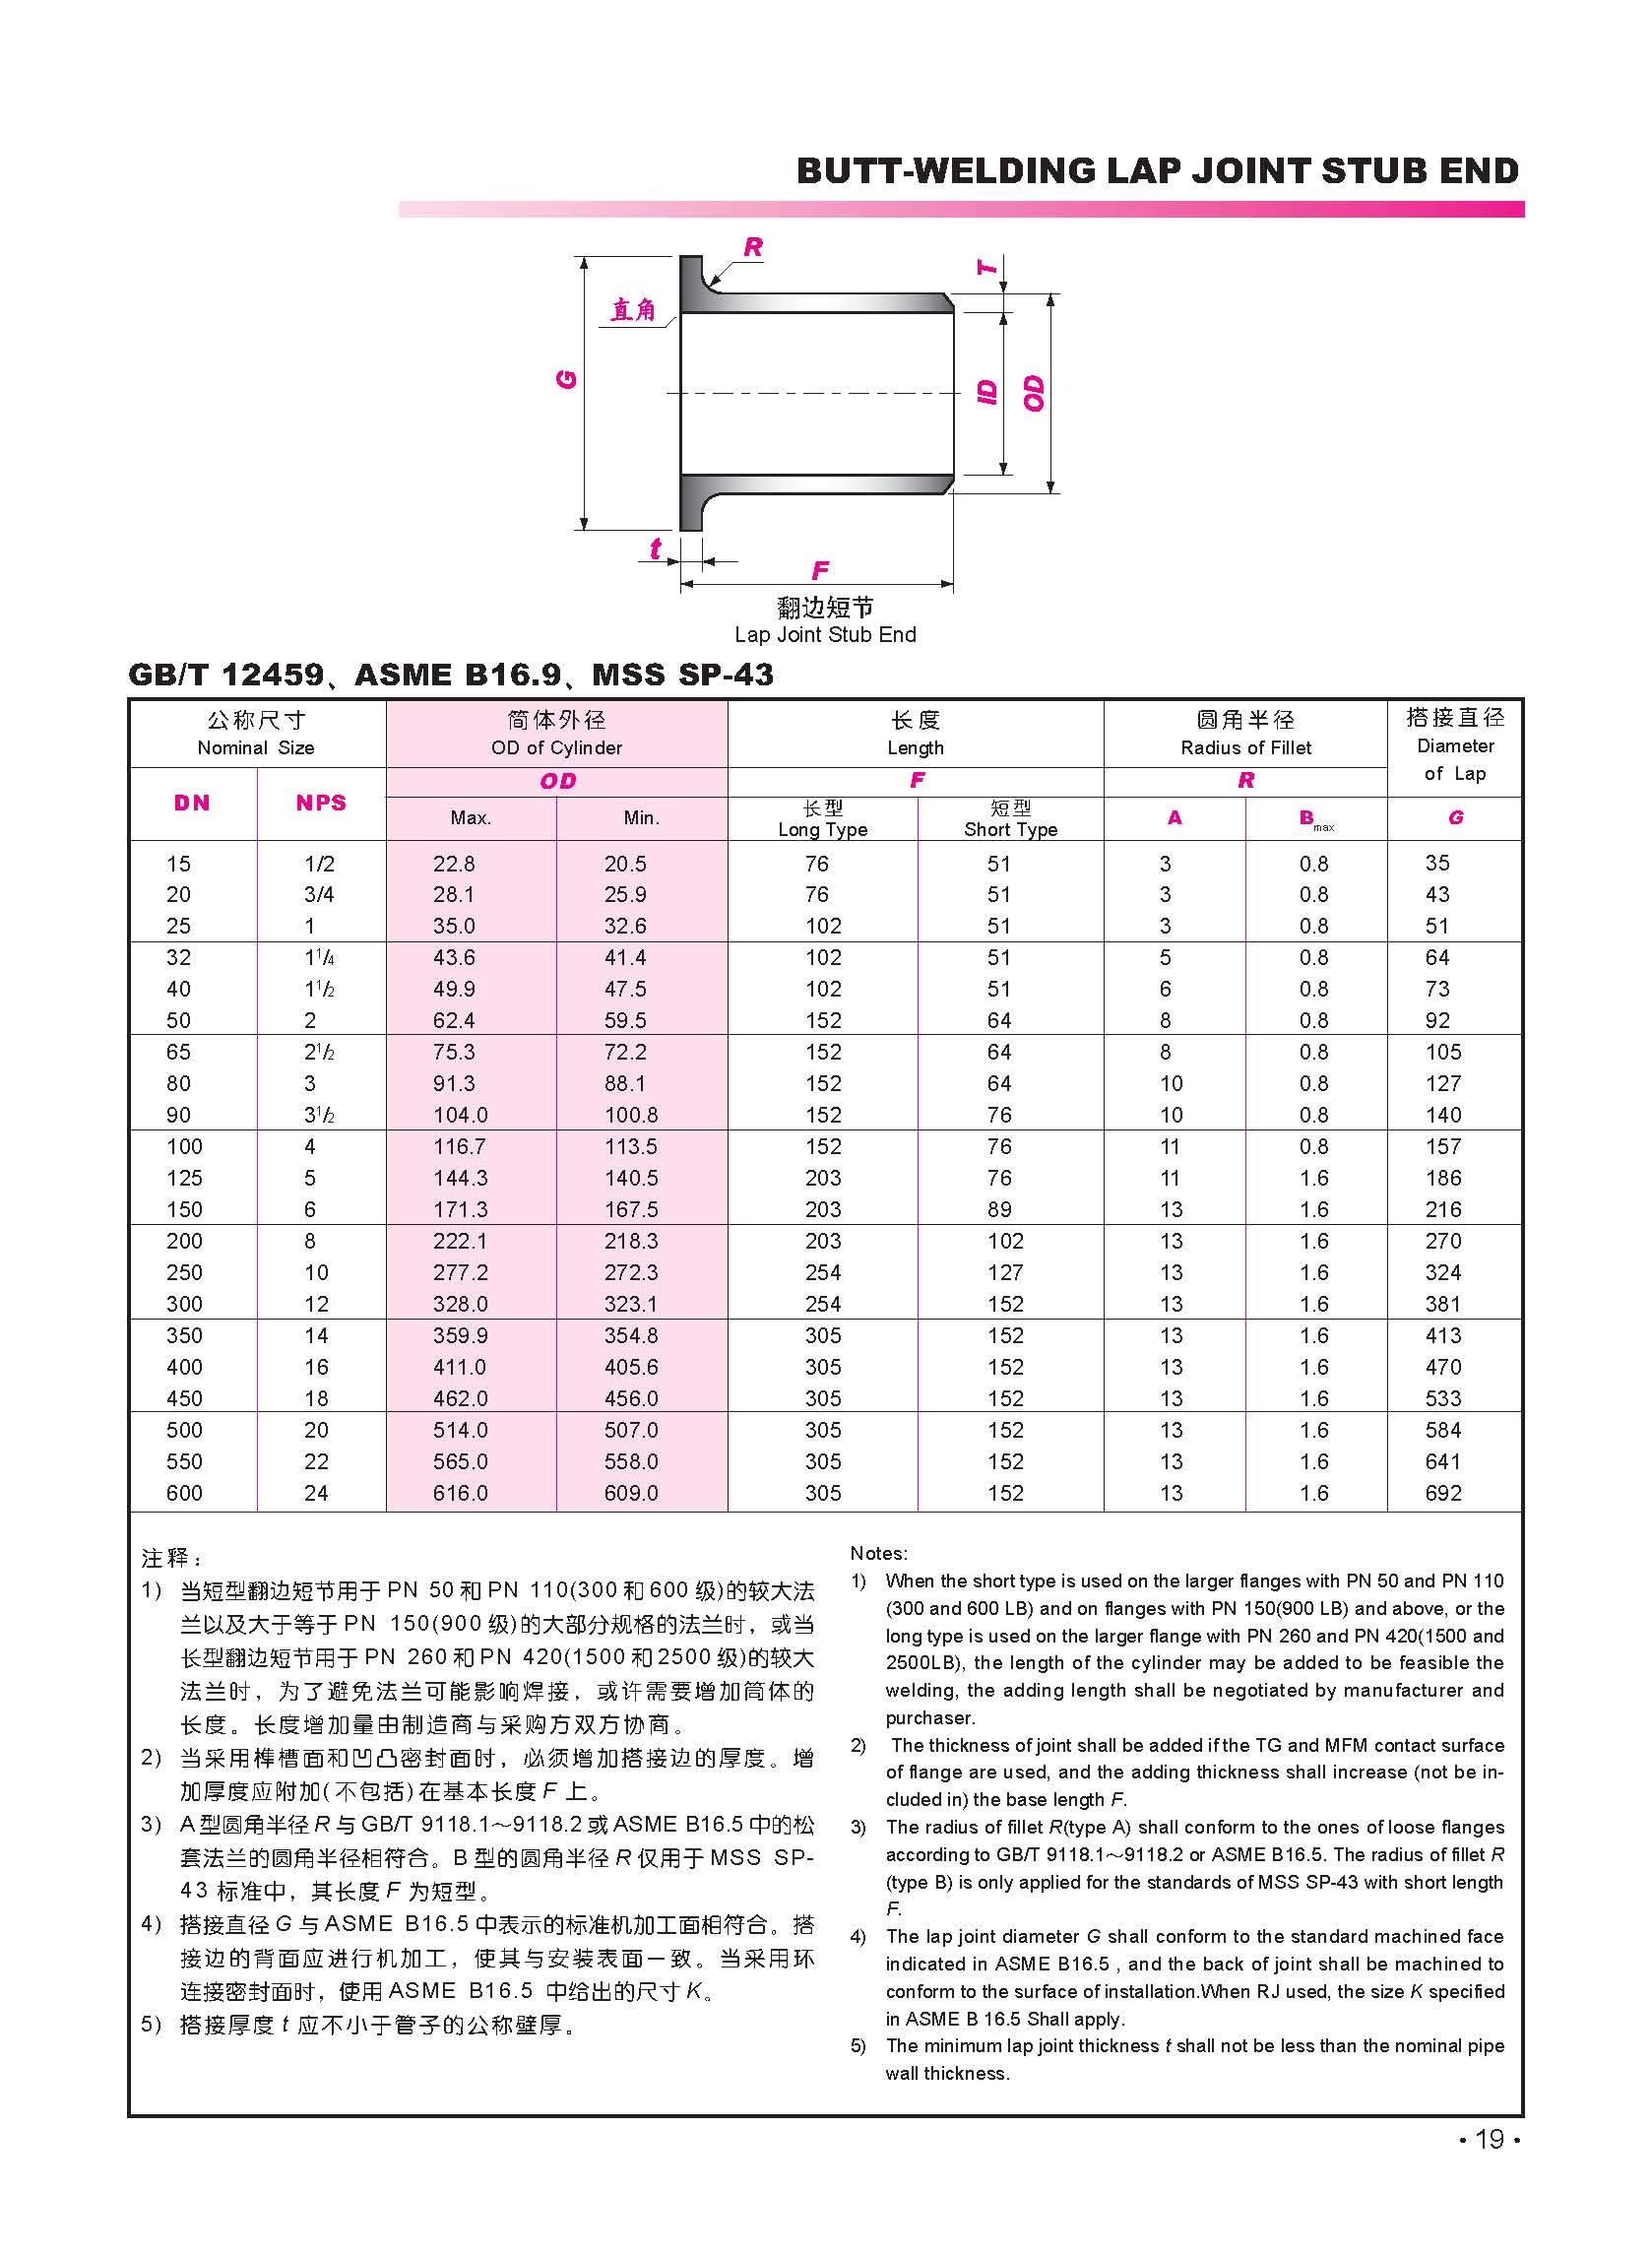 Dimensions of lap joint stub ends - ASME B16.9